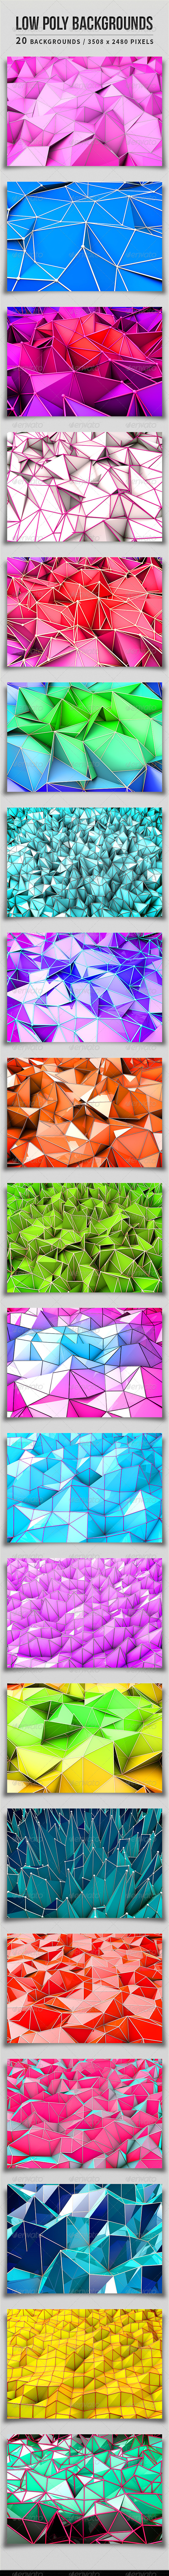 GraphicRiver Low Poly Backgrounds 5092154